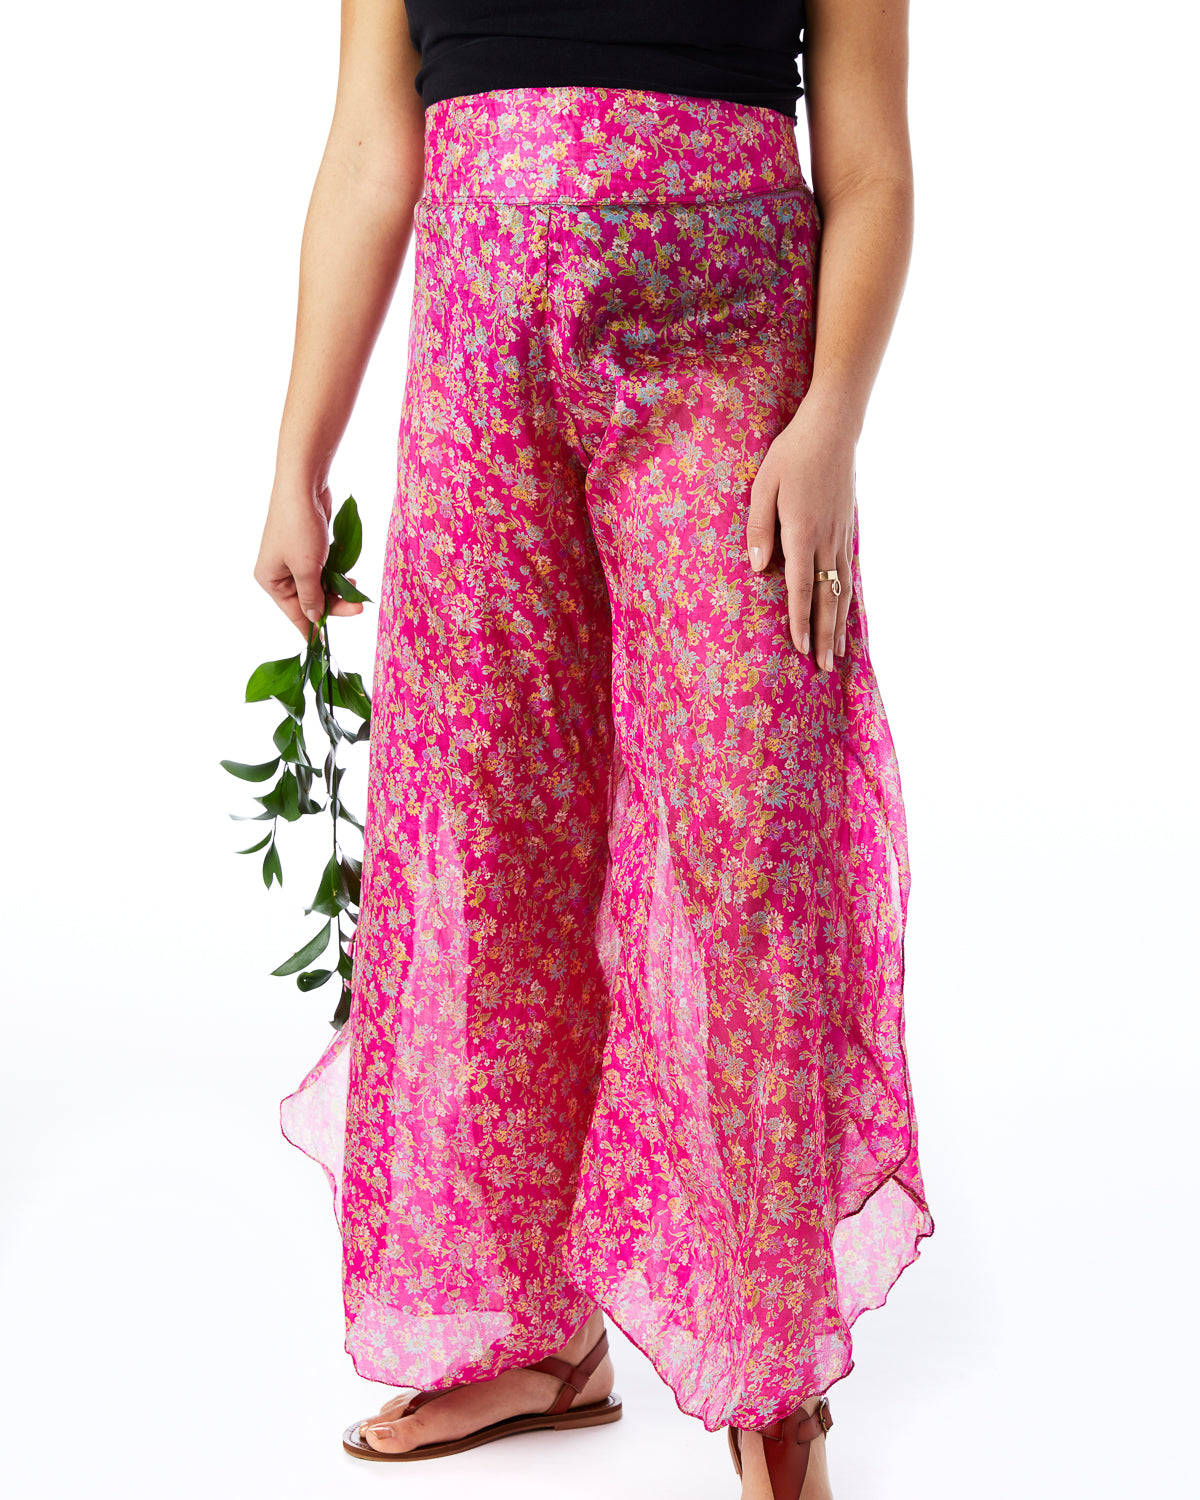 Pink sari palazzo pants hand sewn in India by the NGO Sewing New Futures.